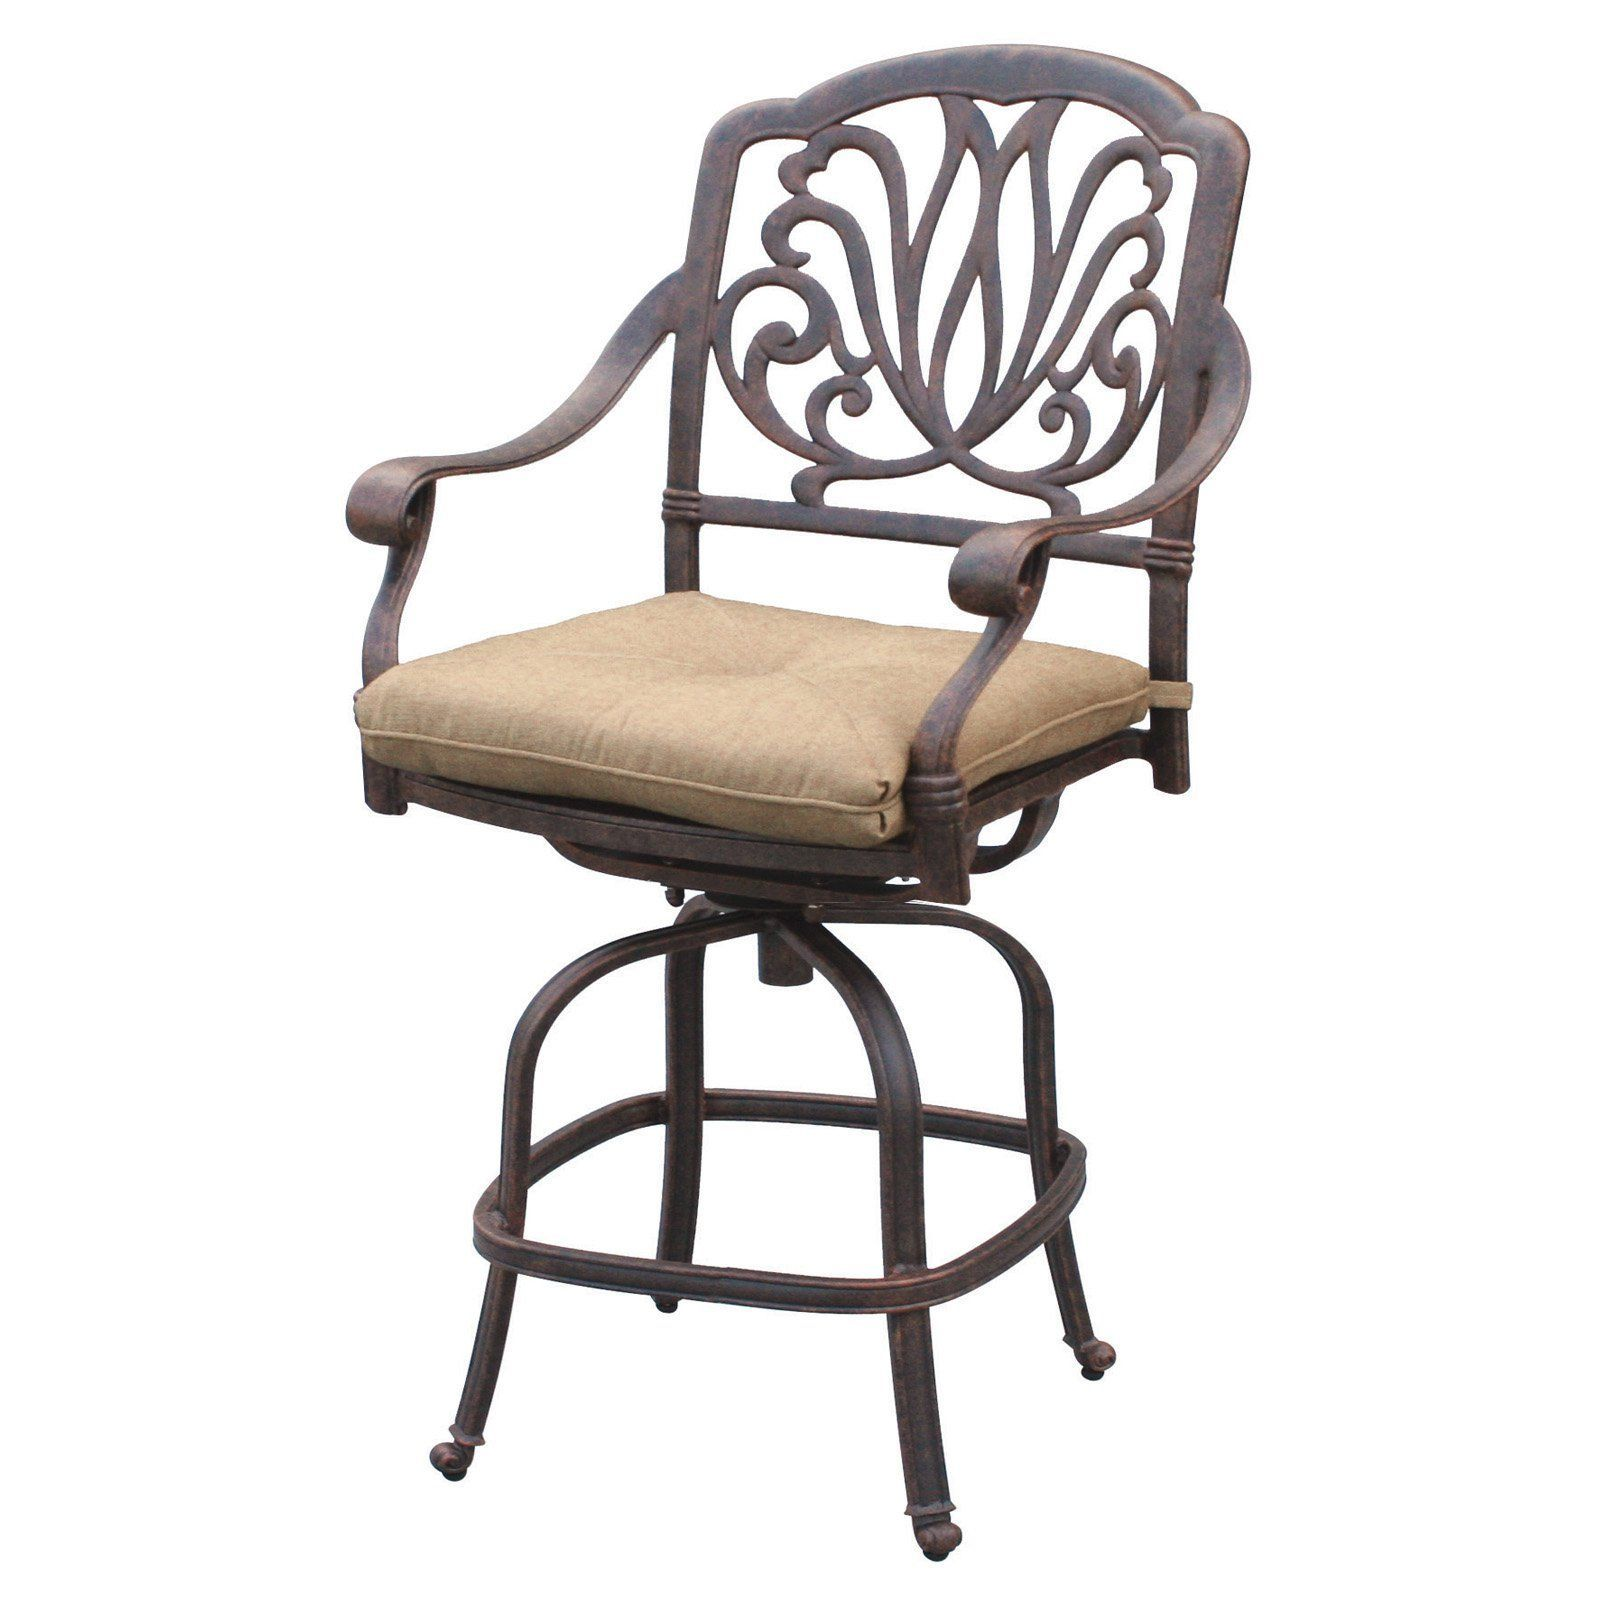 antique bronze Hayneedle $818 for two or Ultimate Patio $300